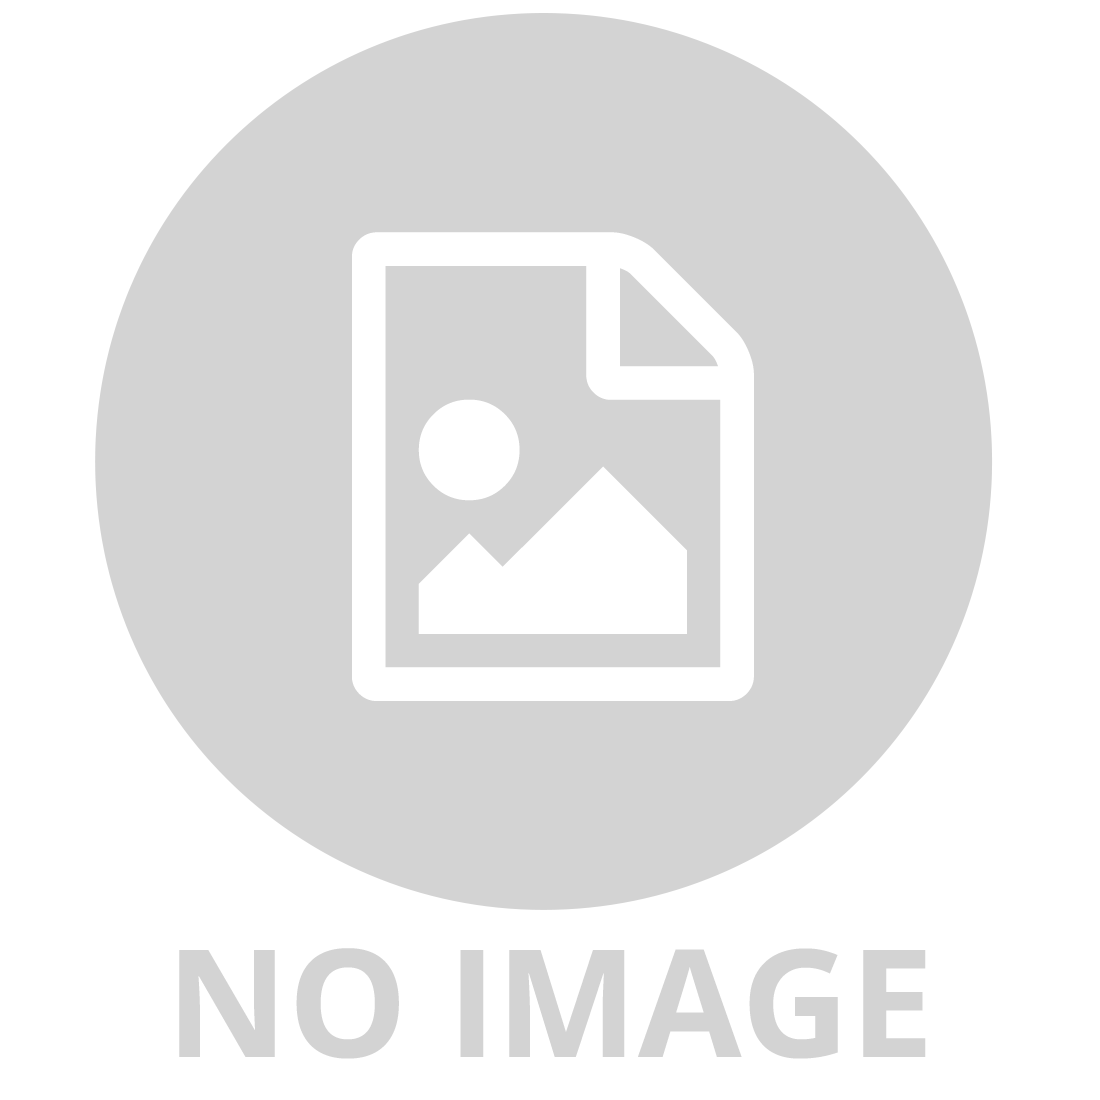 RAVENSBURGER- INTO A NEW WORLD JIGSAW PUZZLE LARGE FORMAT 300PC